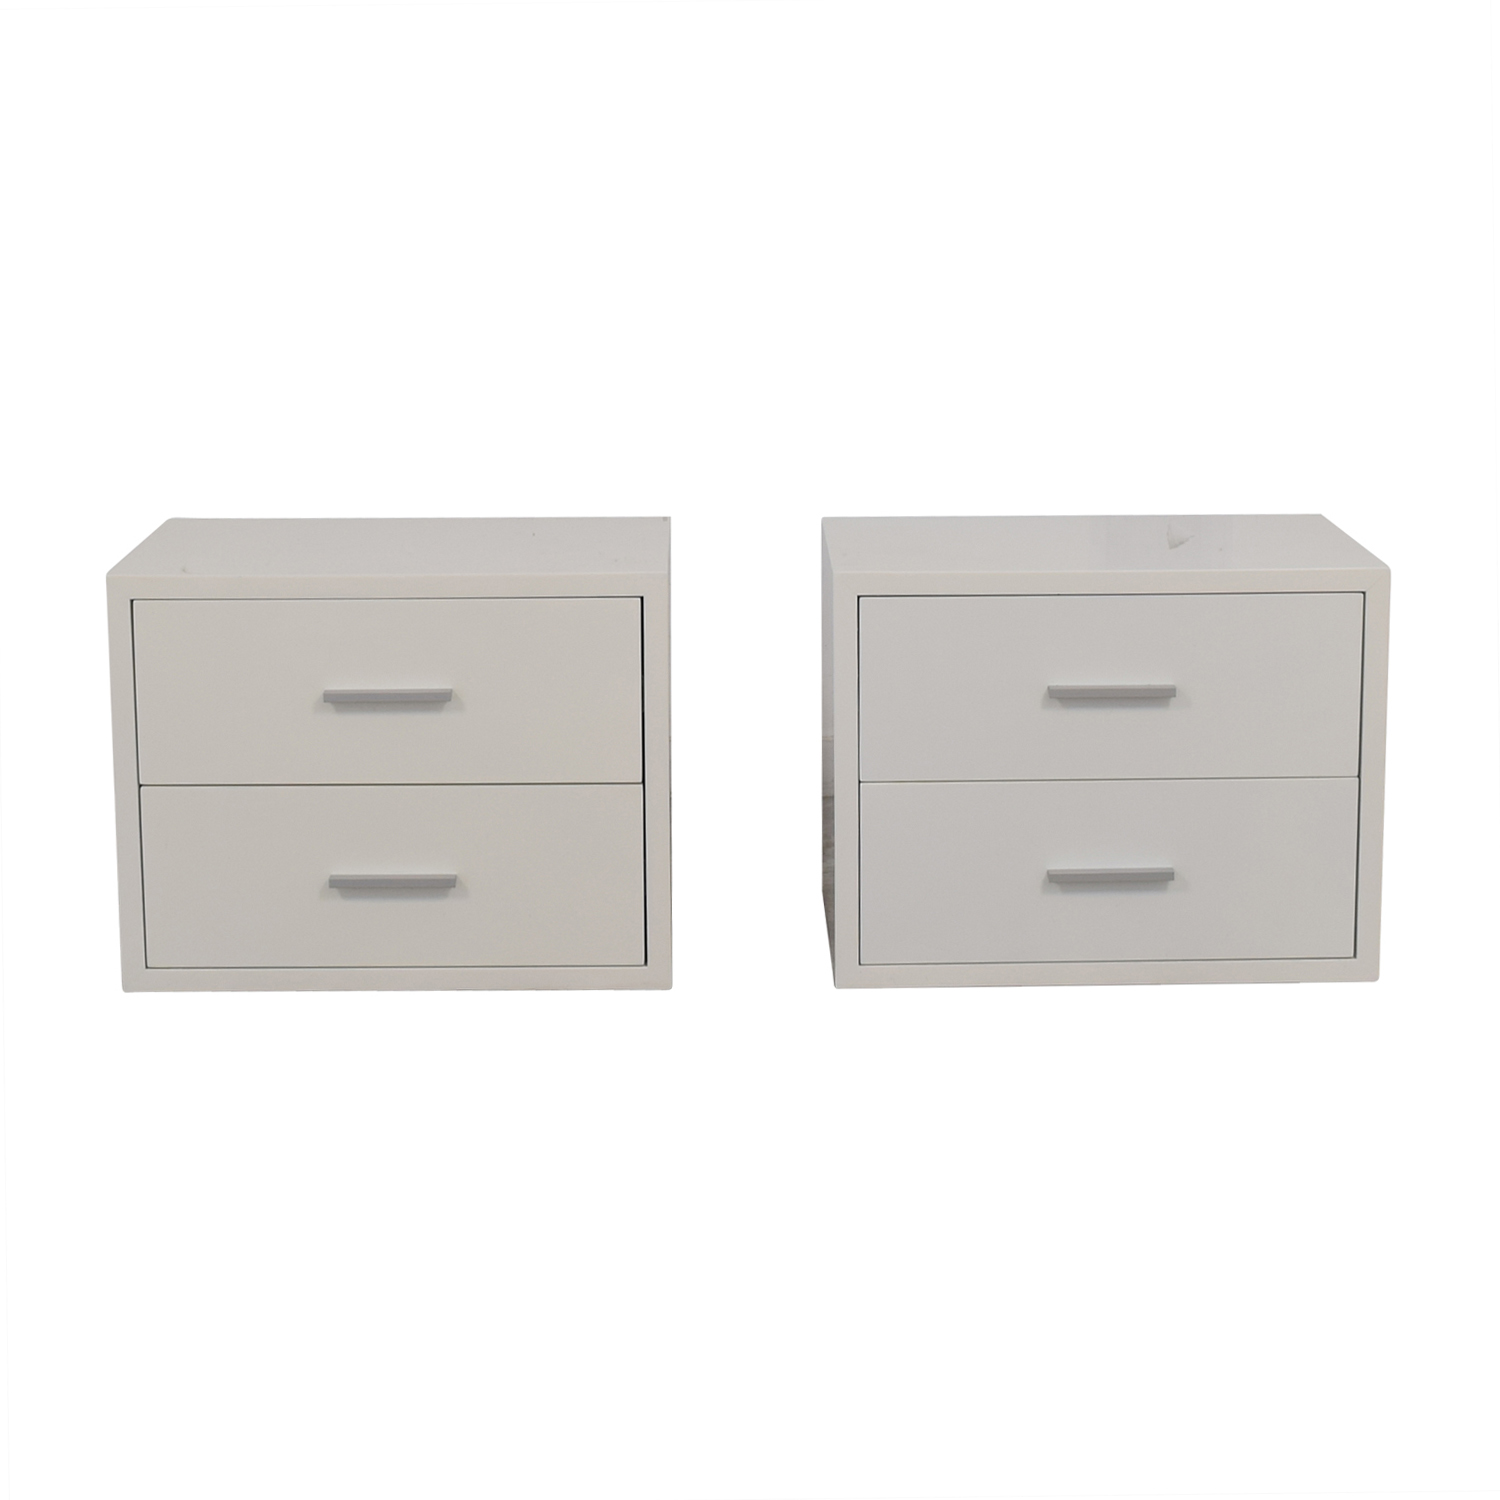 Modani Modani Vito White Two-Drawer Night Stands nj